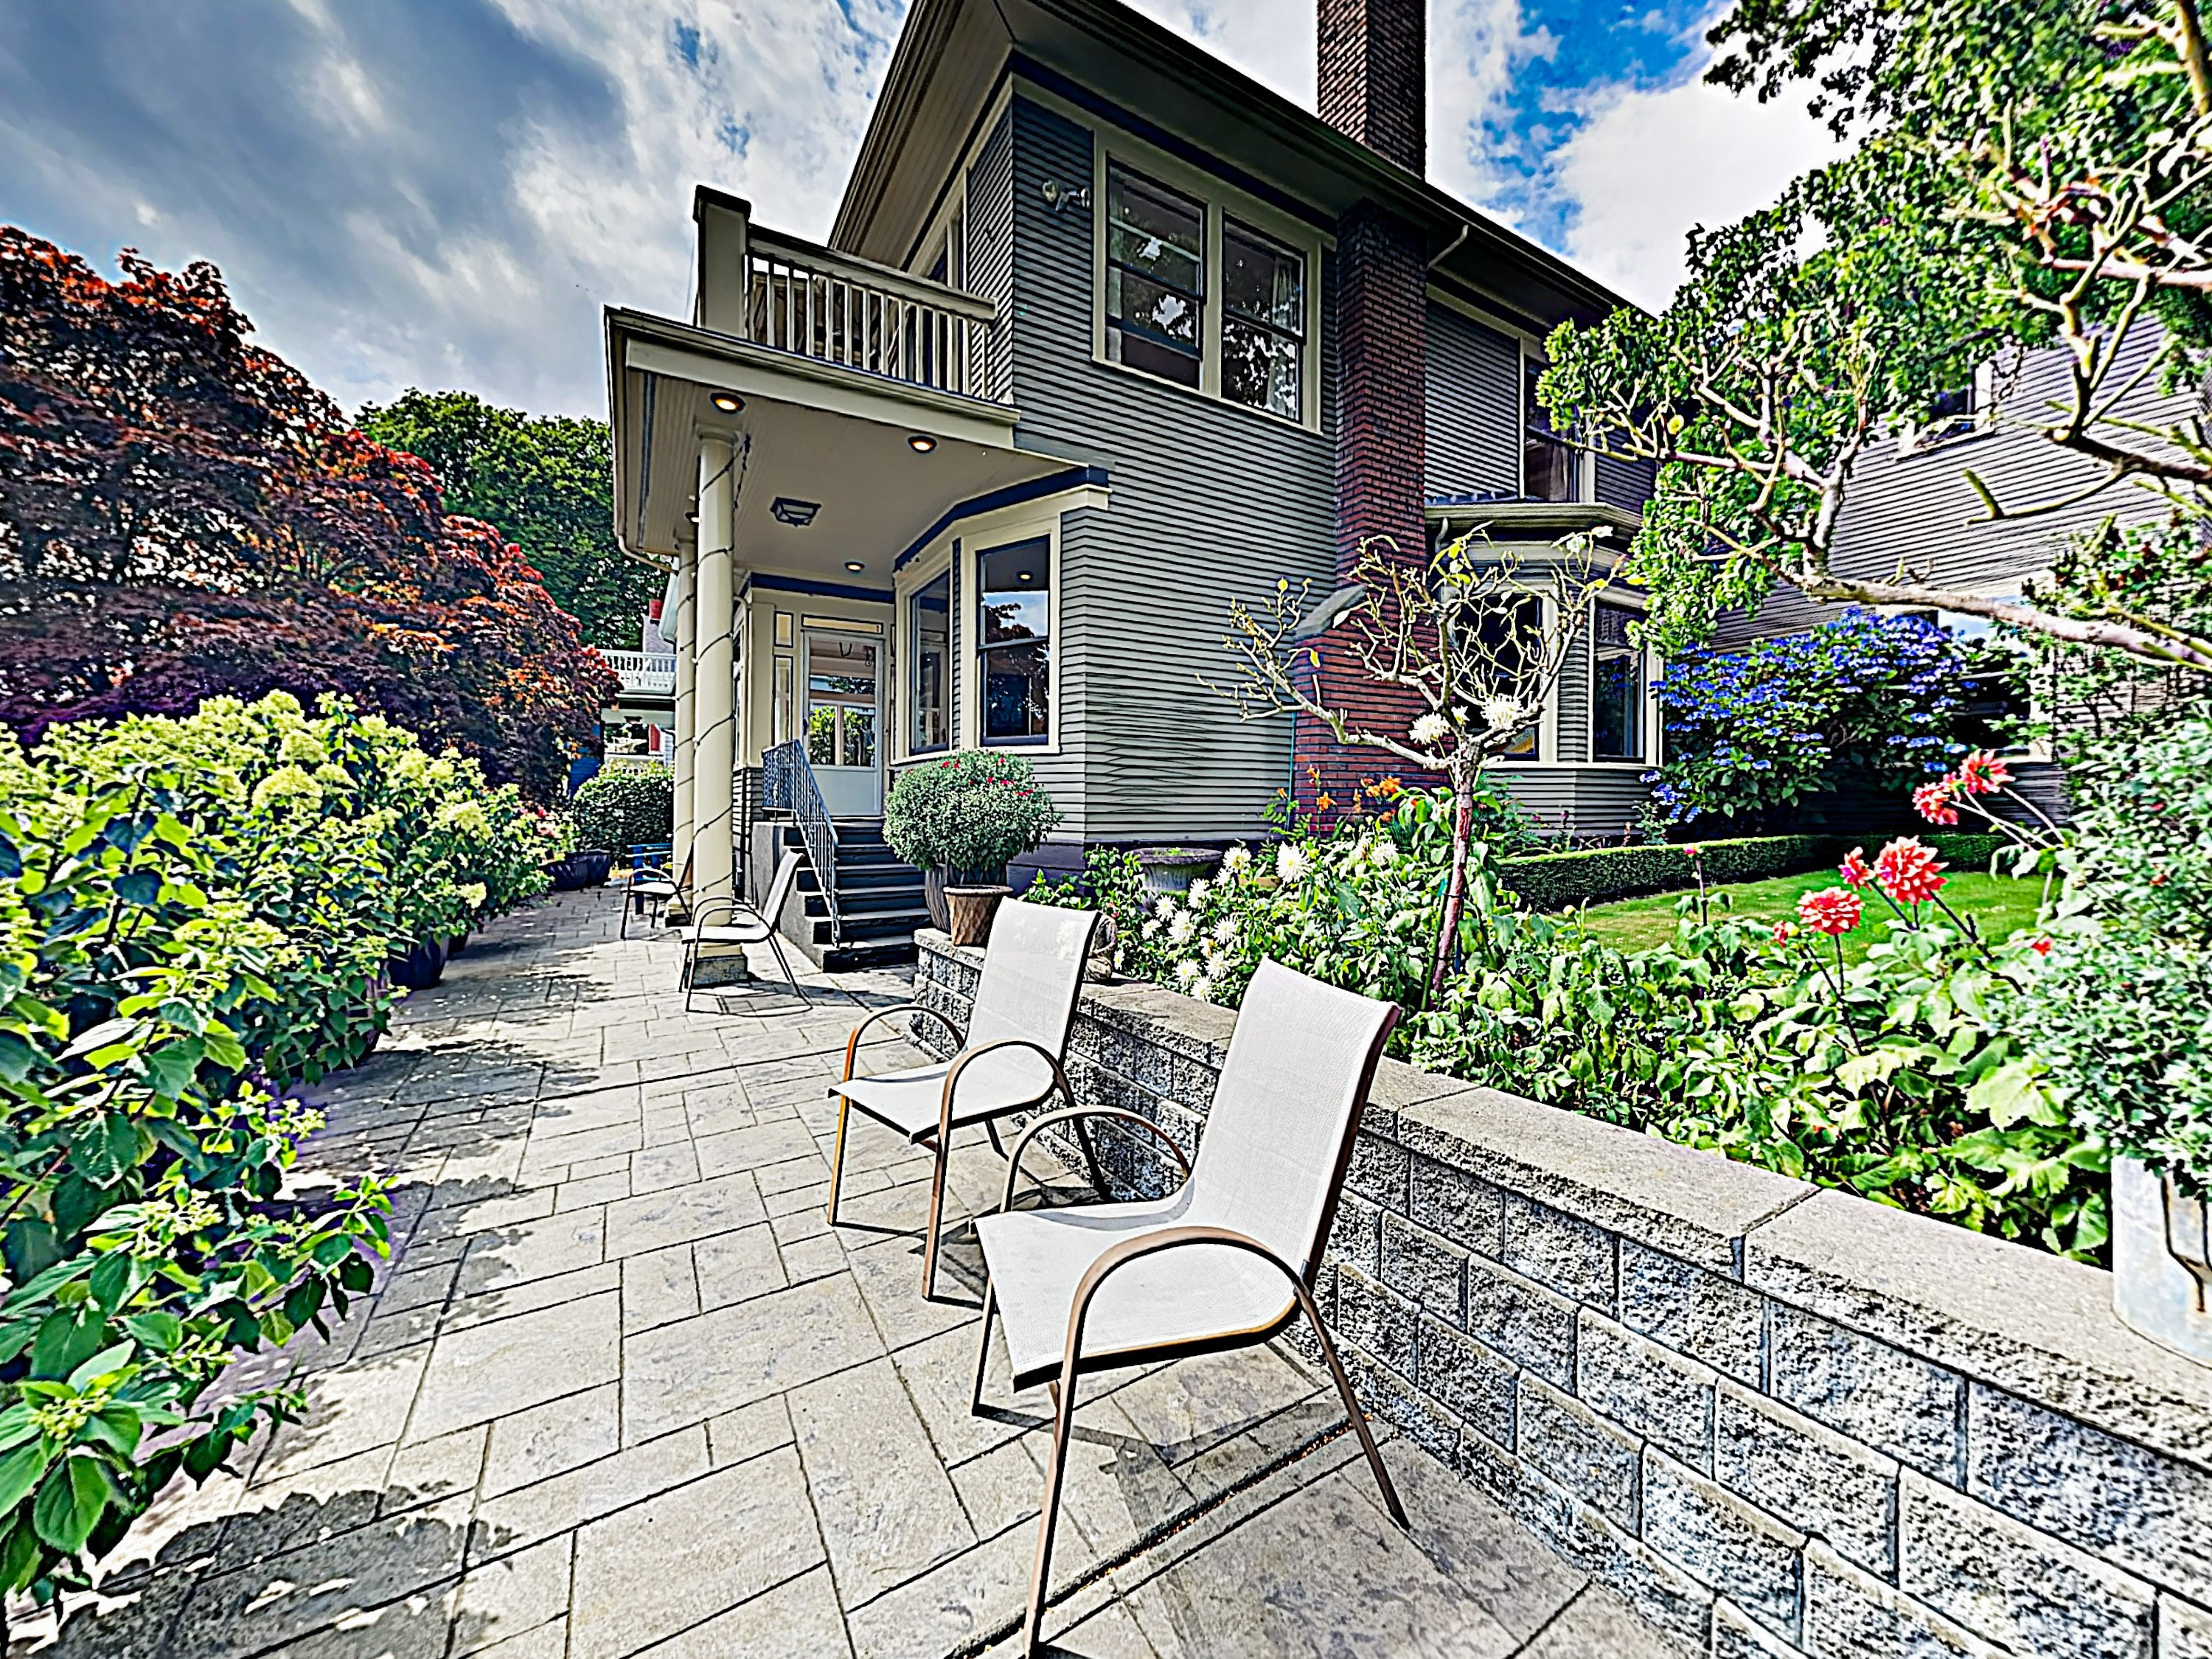 Soak up the sun among the flowers. The beautiful front yard offers a haven of relaxation.